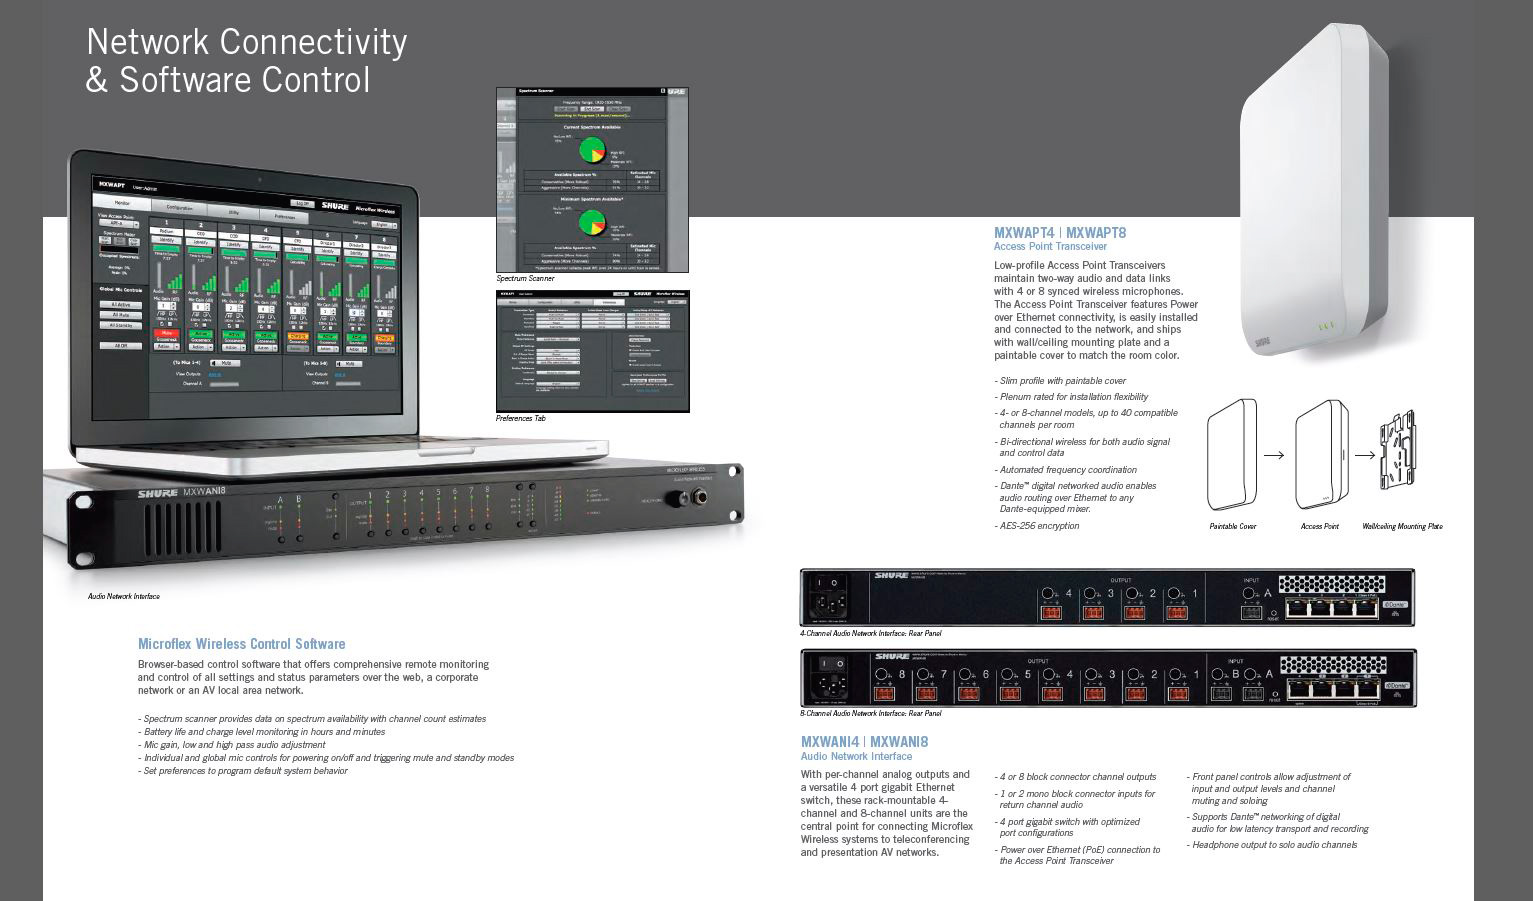 Shure Mxwapt8 8 Channel Access Point Transceiver